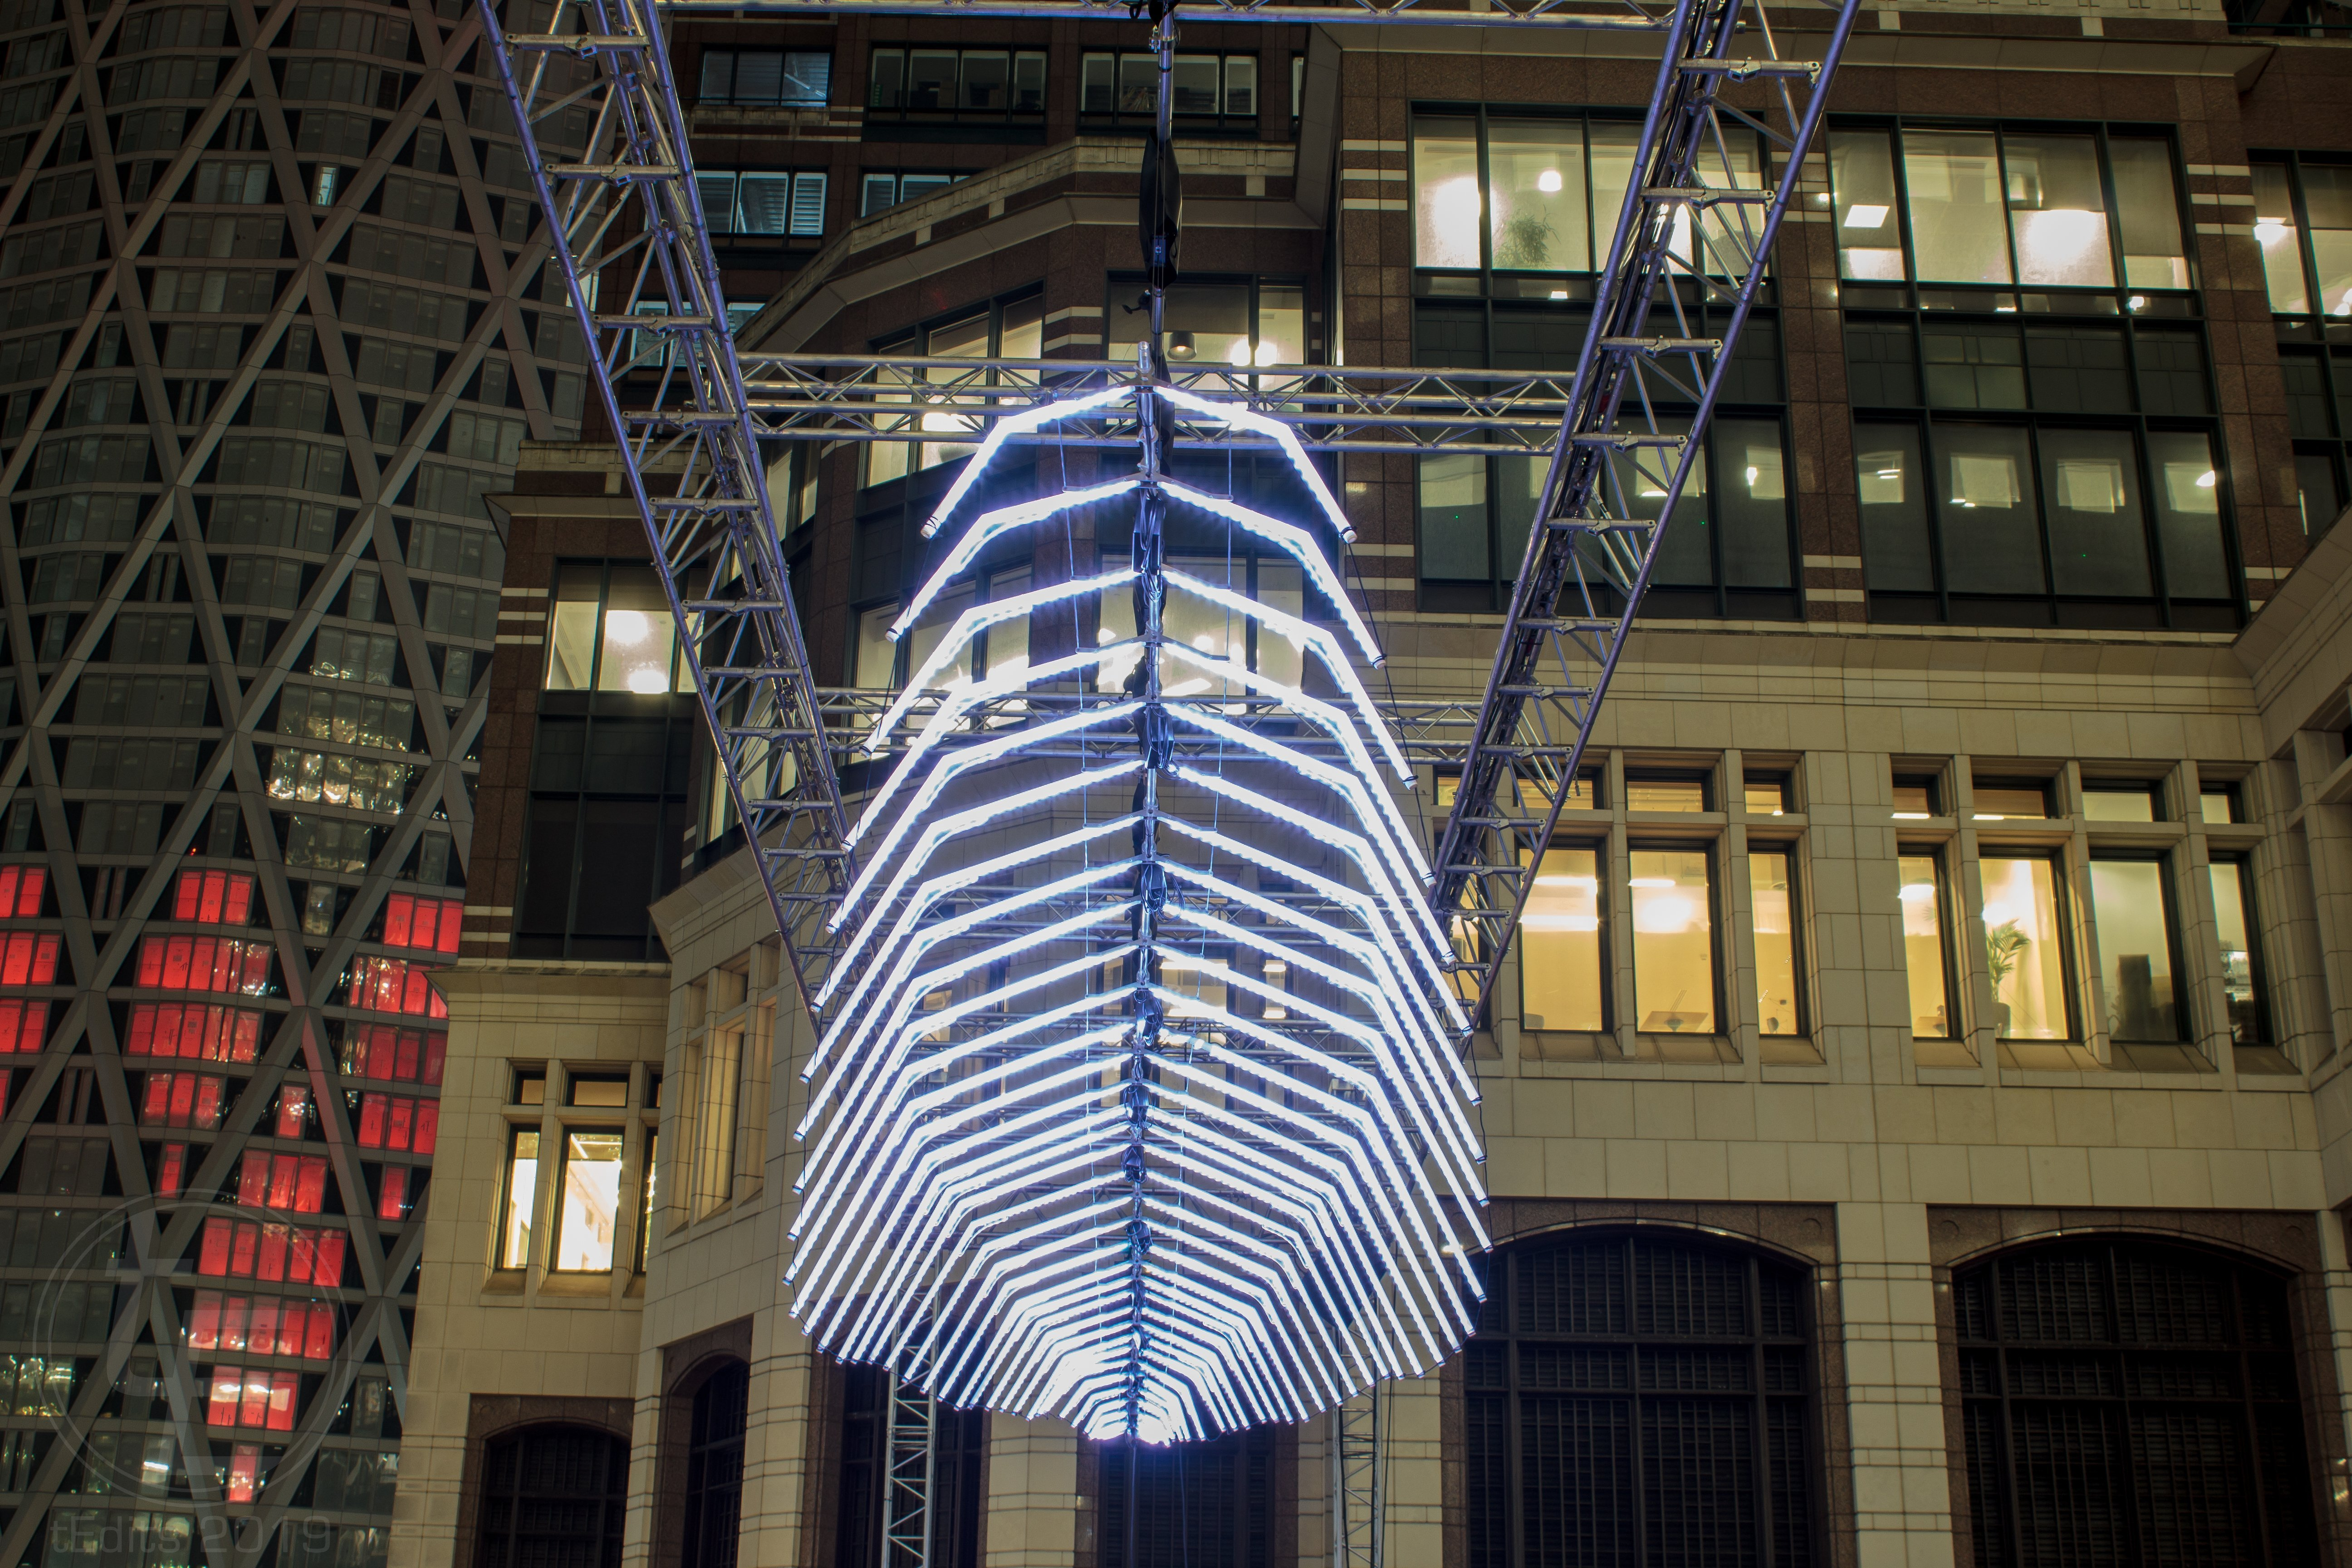 Canary Wharf Winter Lights 2019 - Whale Ghost, Pitaya